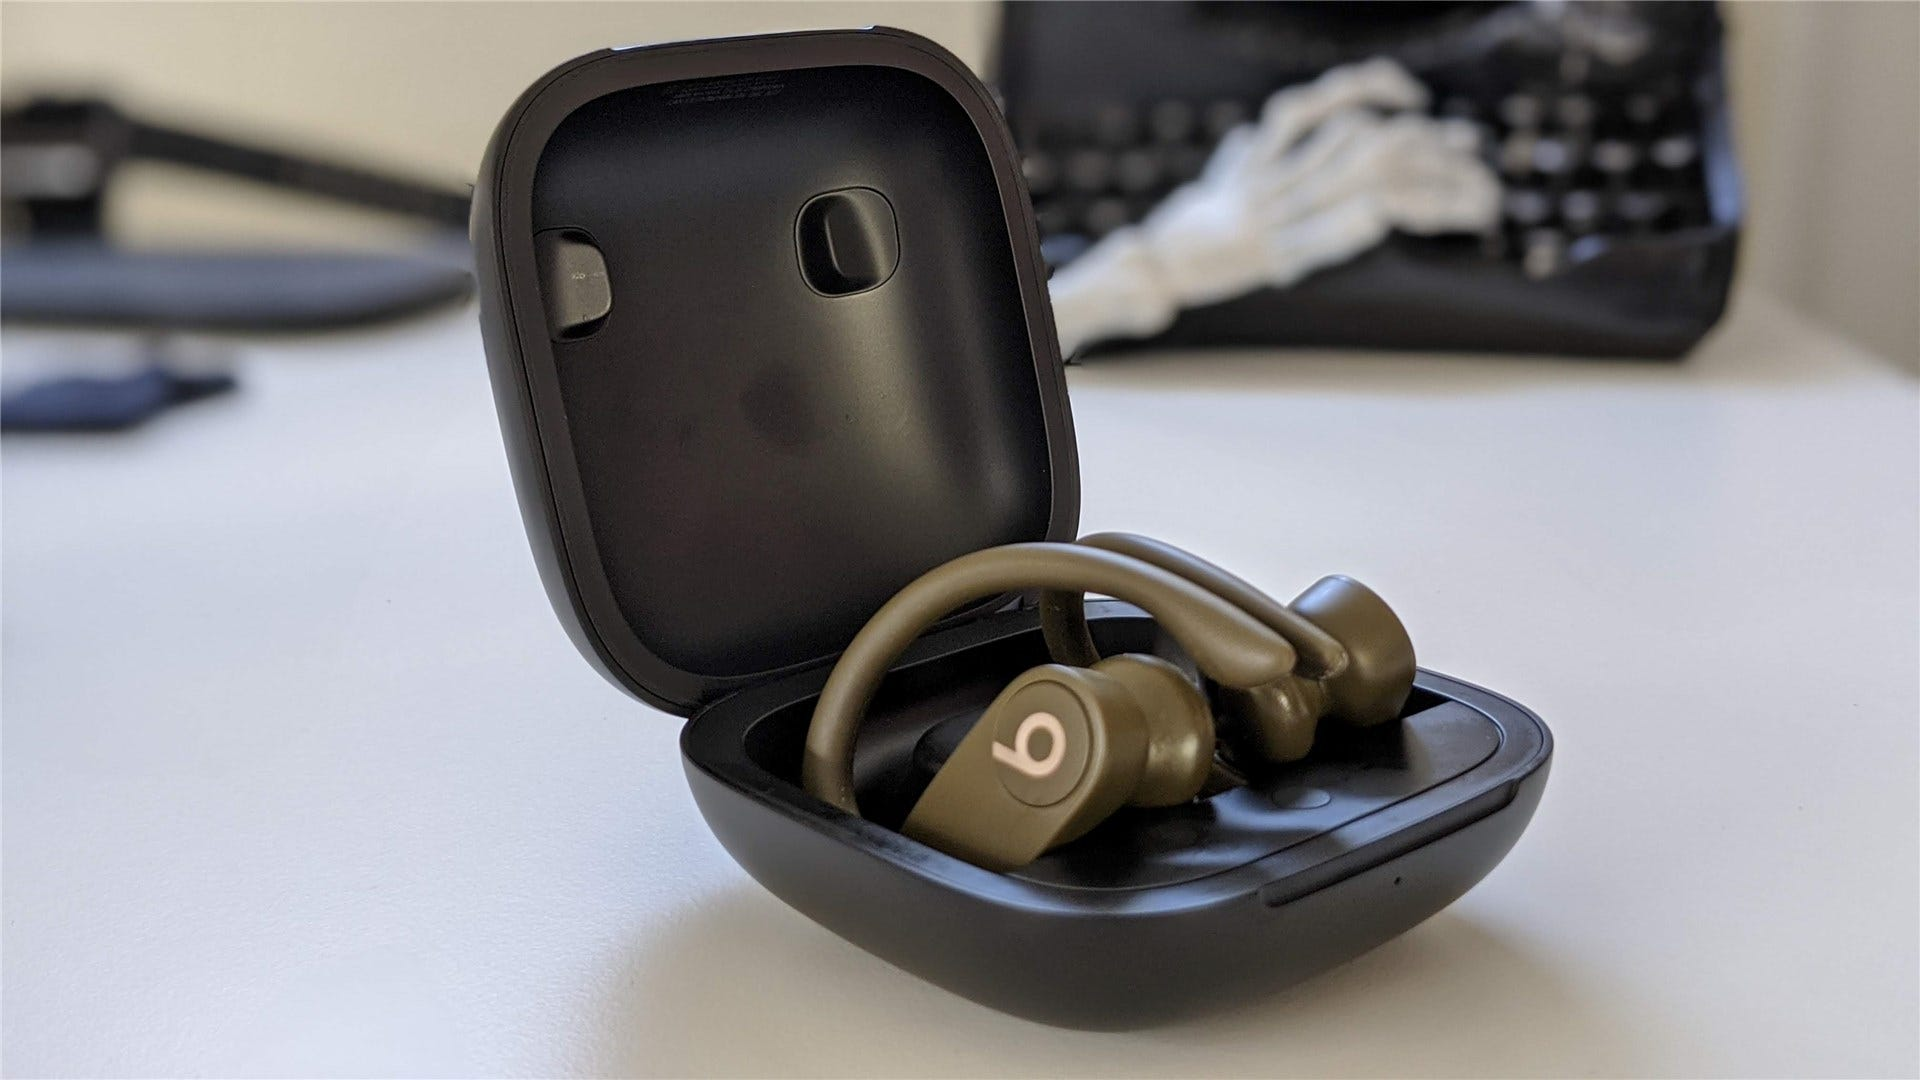 The Powerbeats Pro in the case, open